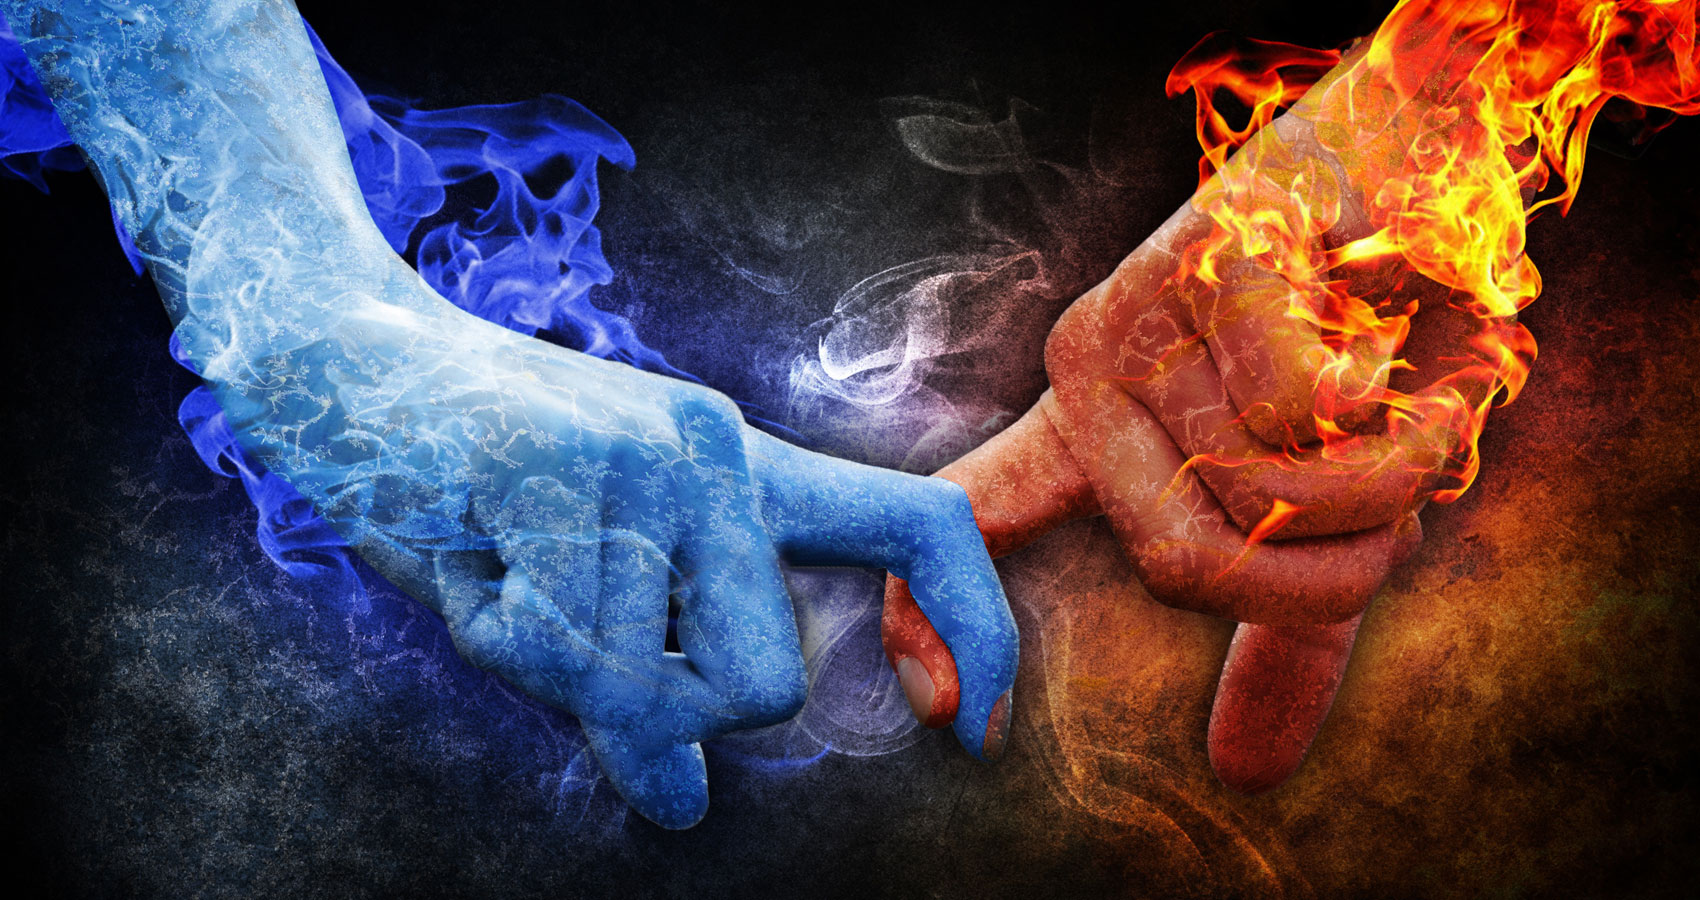 Forged In Fire And Ice written by Anne G at Spillwords.com